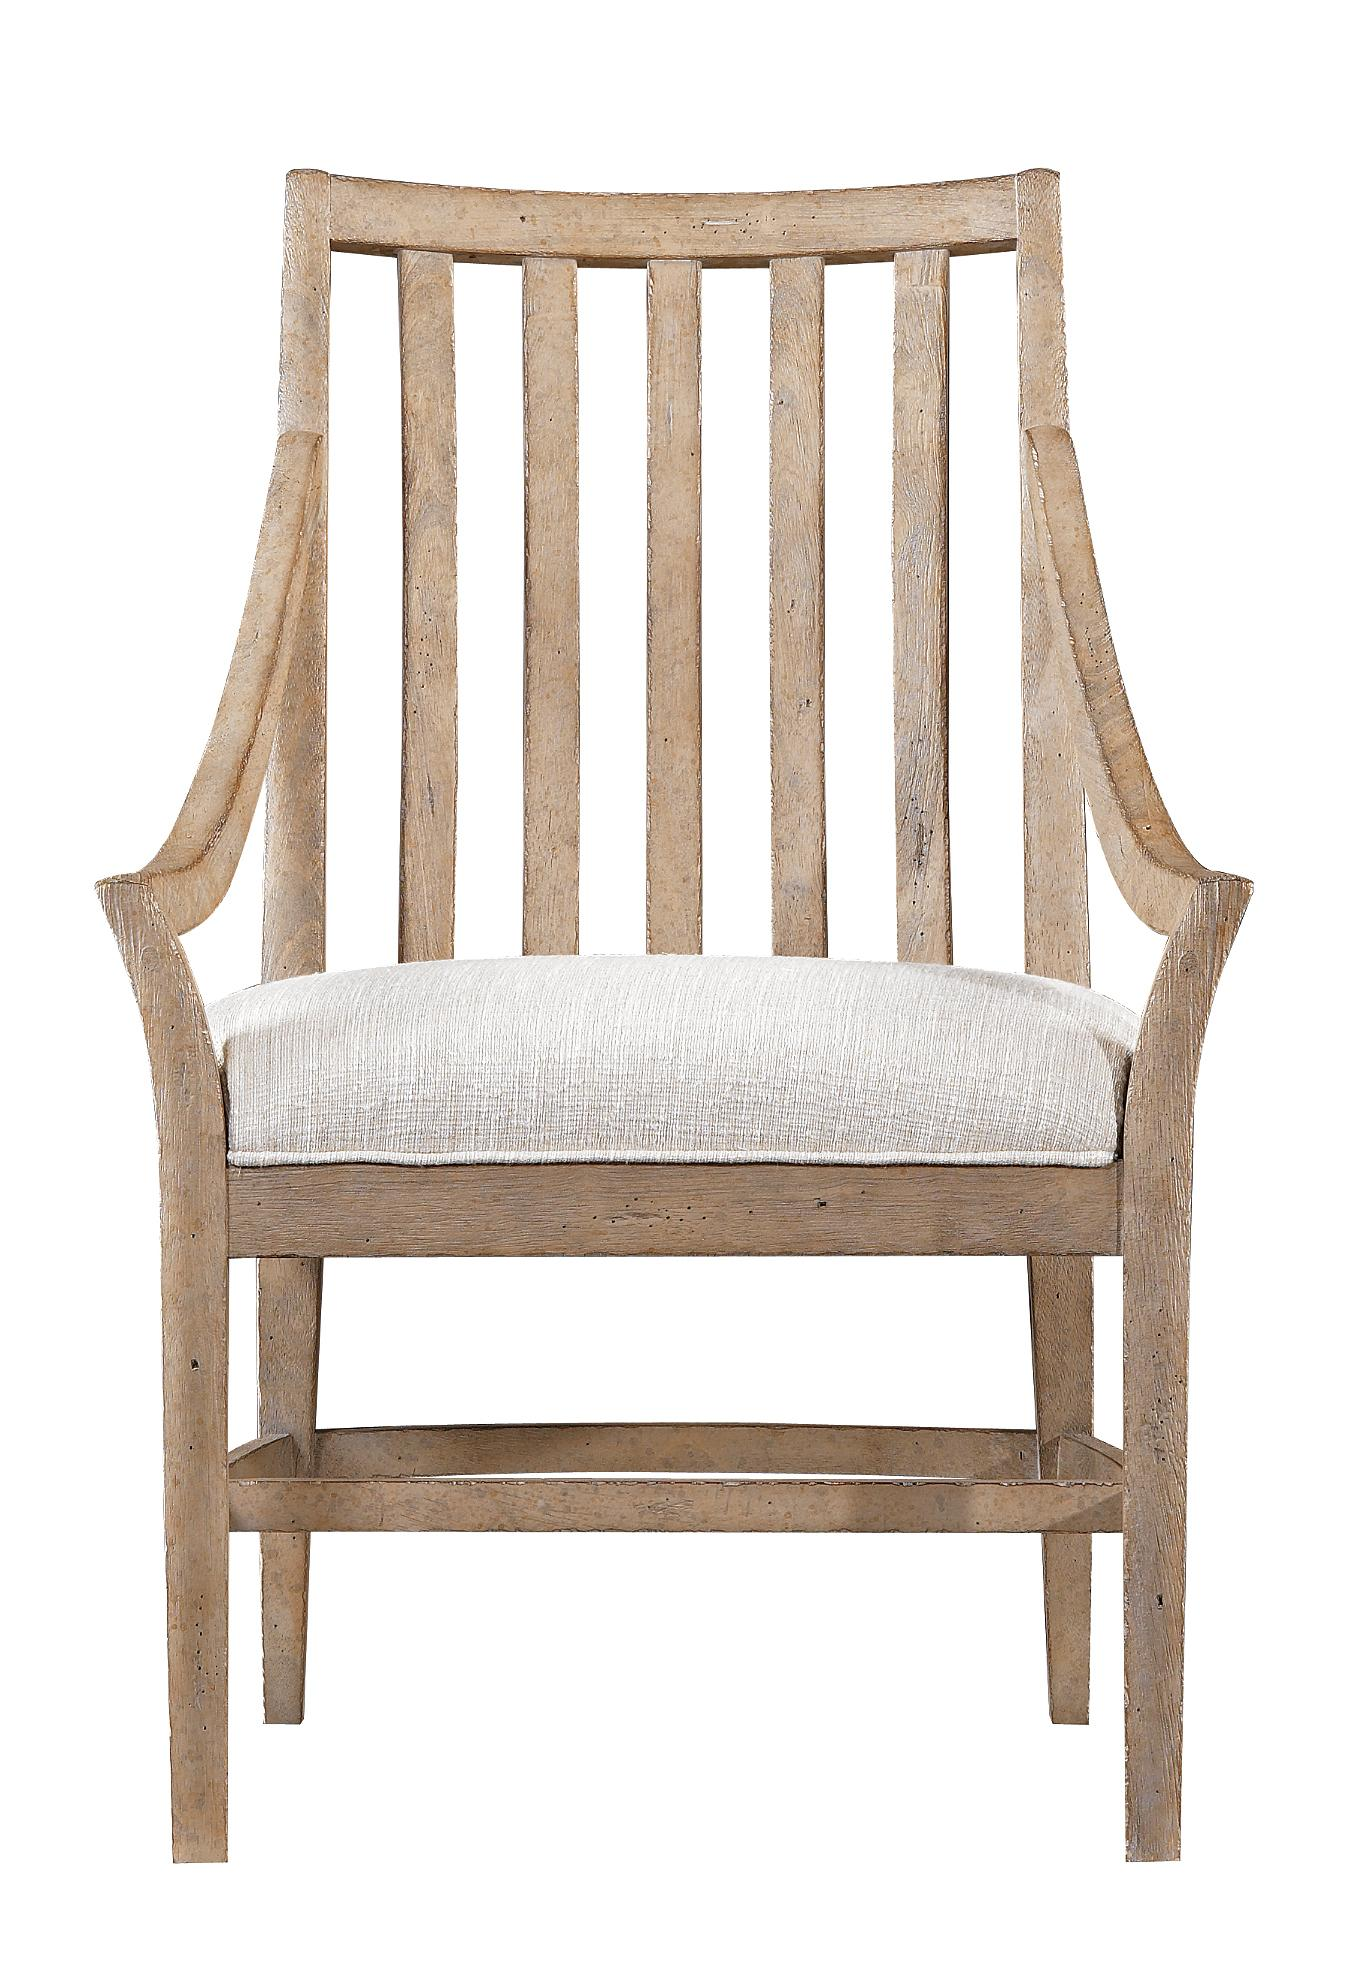 Stanley Furniture Coastal Living Resort By the Bay Dining Chair - Item Number: 062-71-65